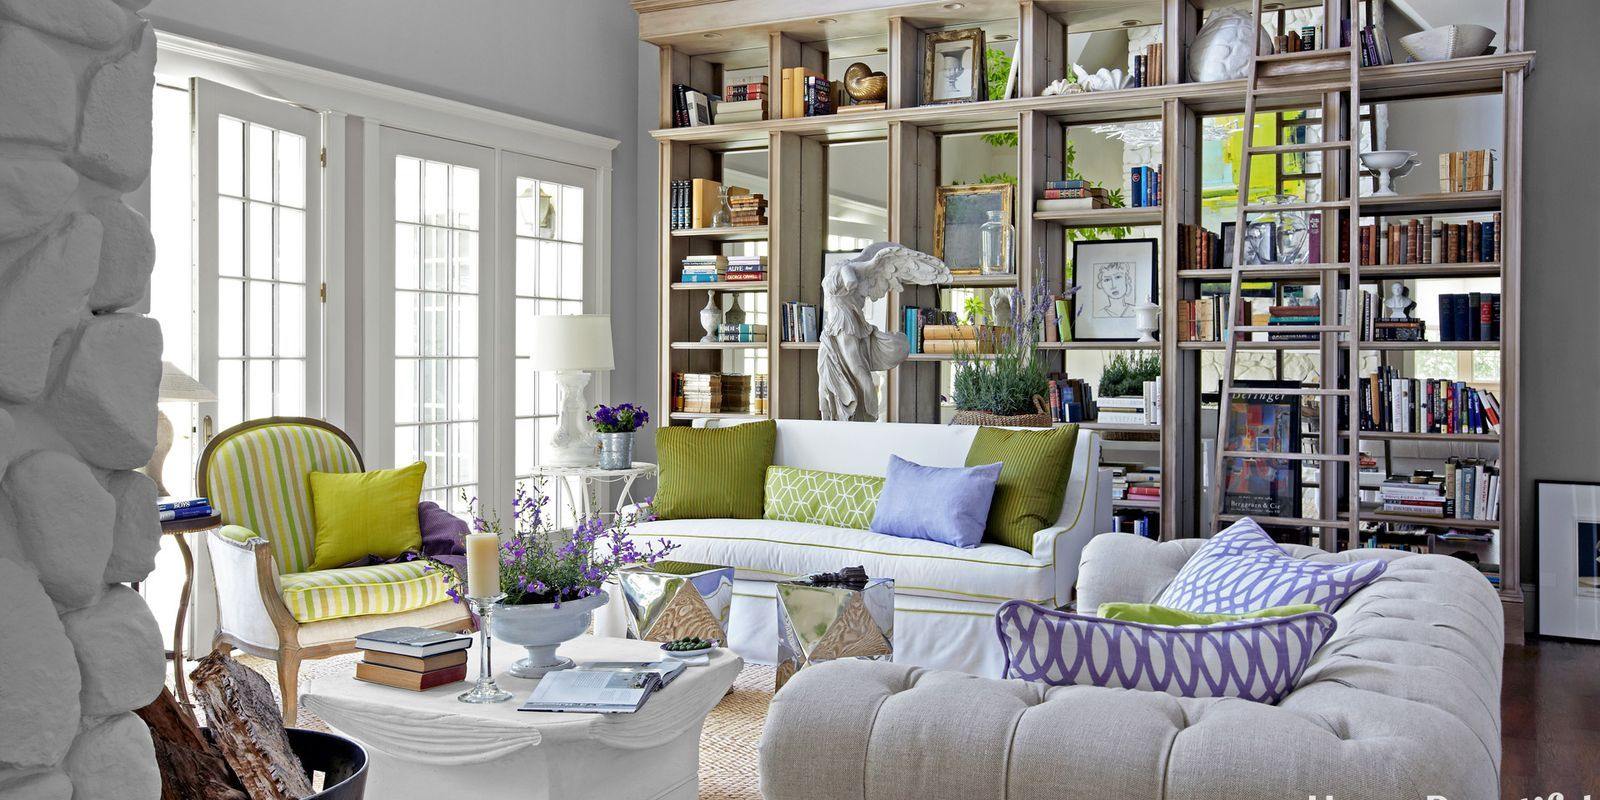 Genial Add Some Excitement To Your Shelves With These Ideas.